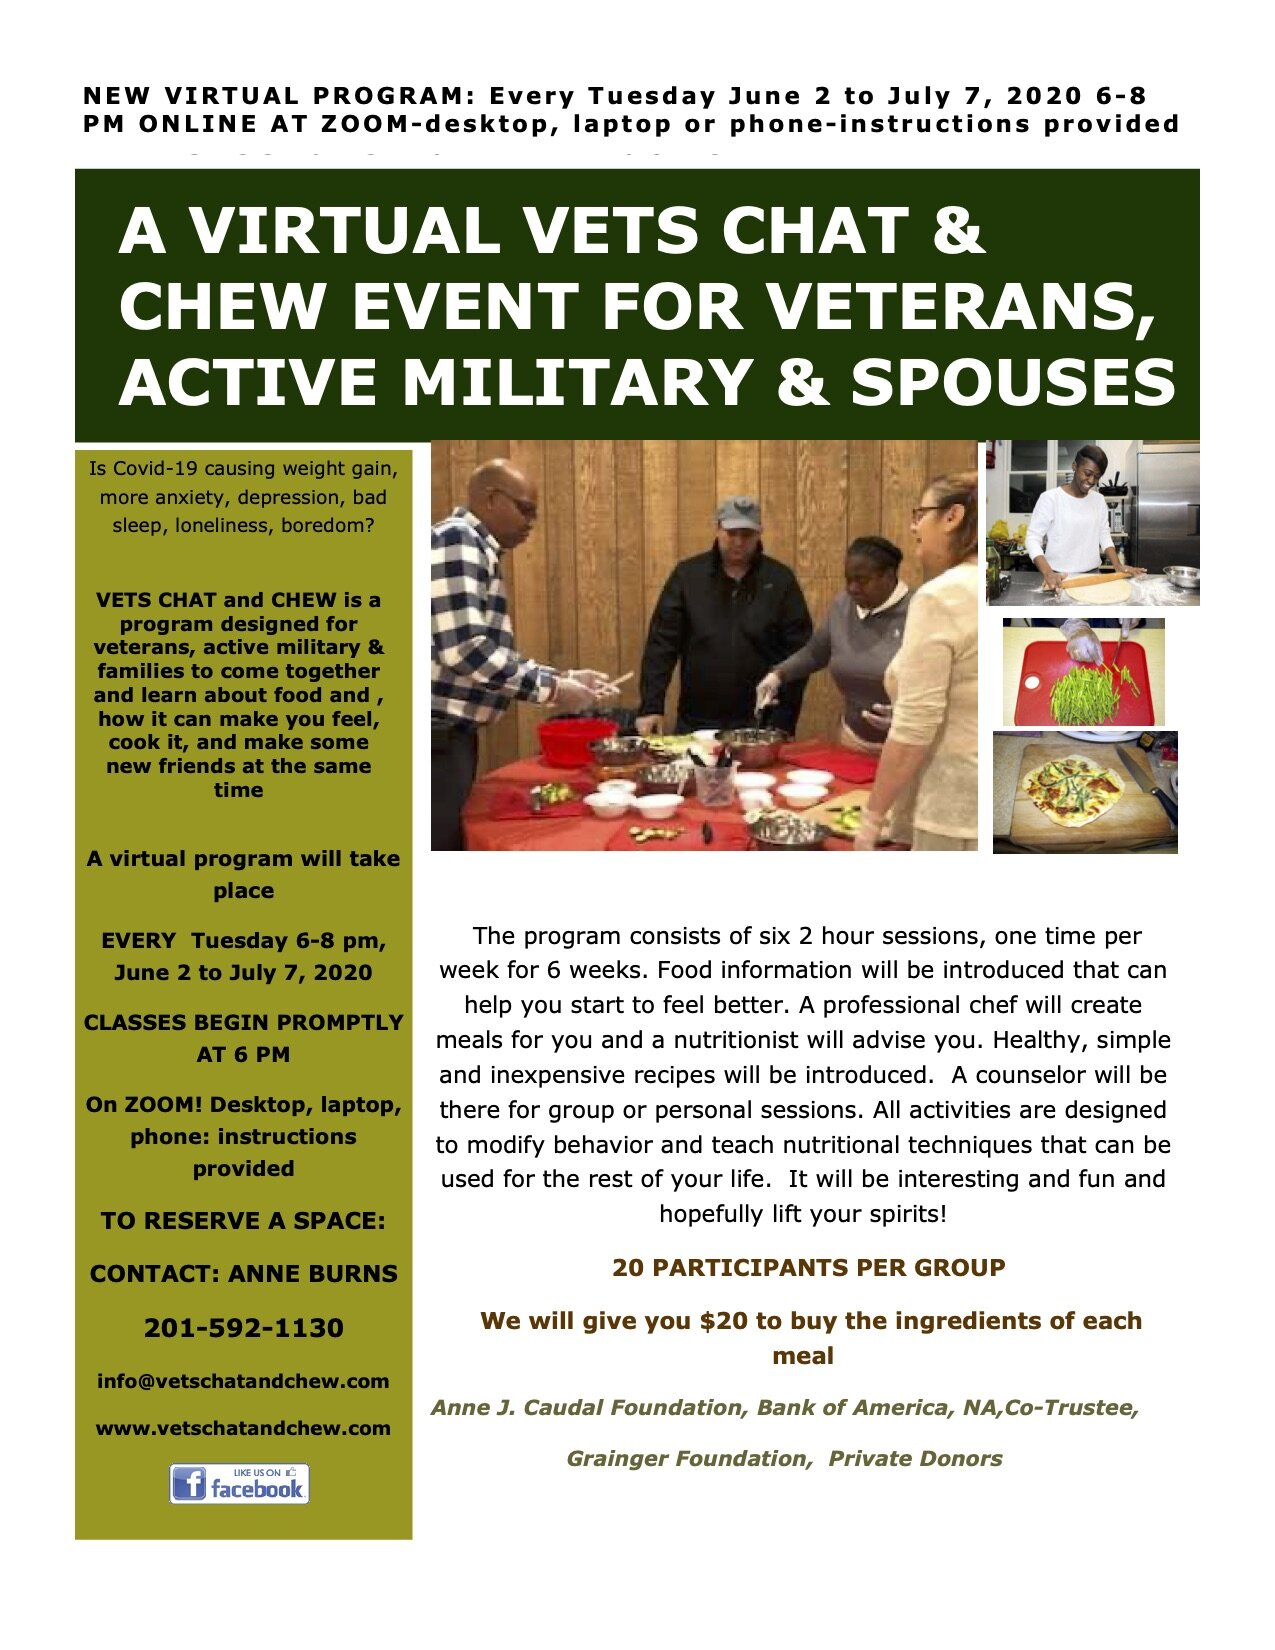 Vets Chat & Chew flyer-virtual program.jpg